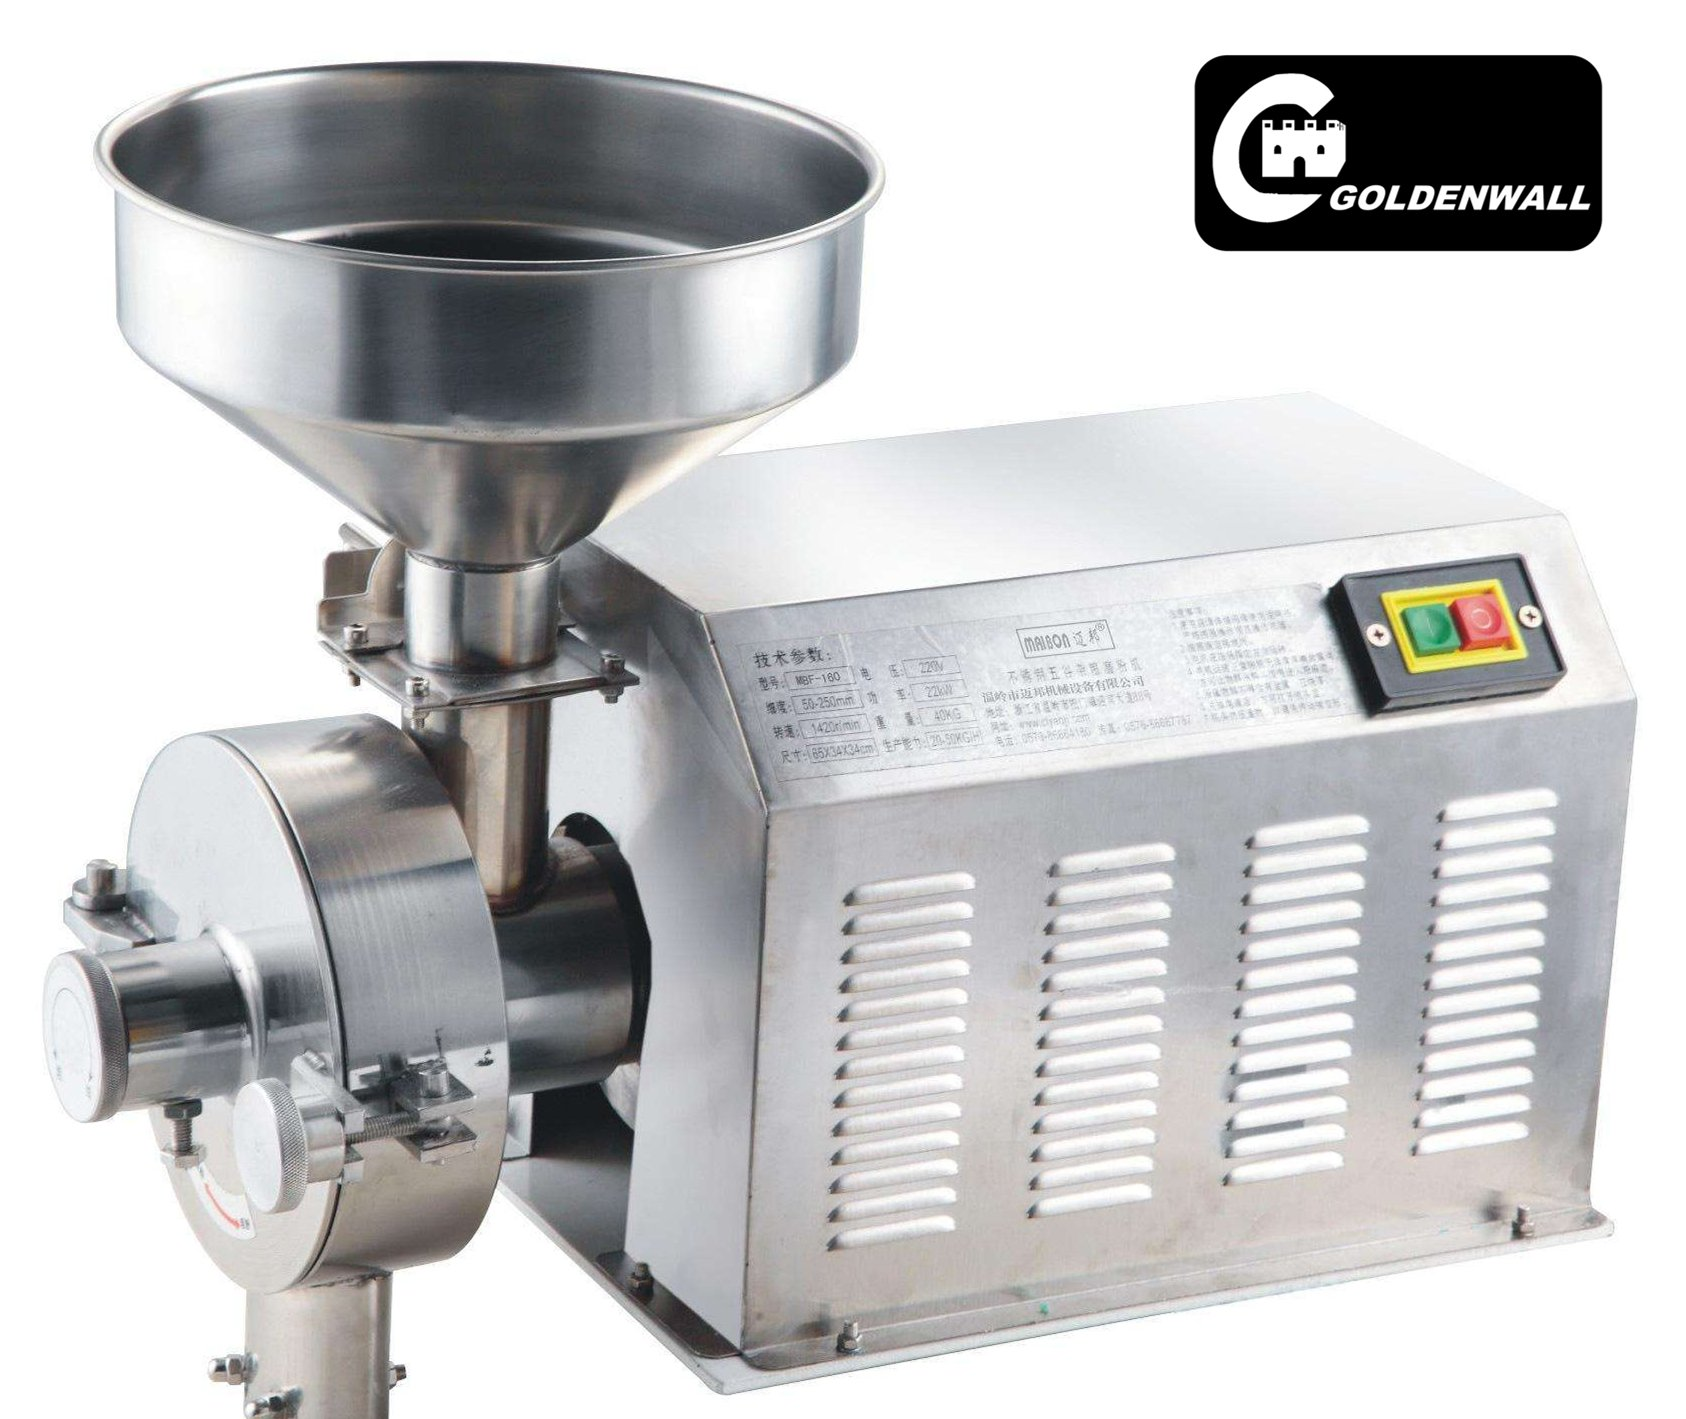 Household commerical stainless steel electric high power spices soybean grain nut multifunctional grinding machine 2800w